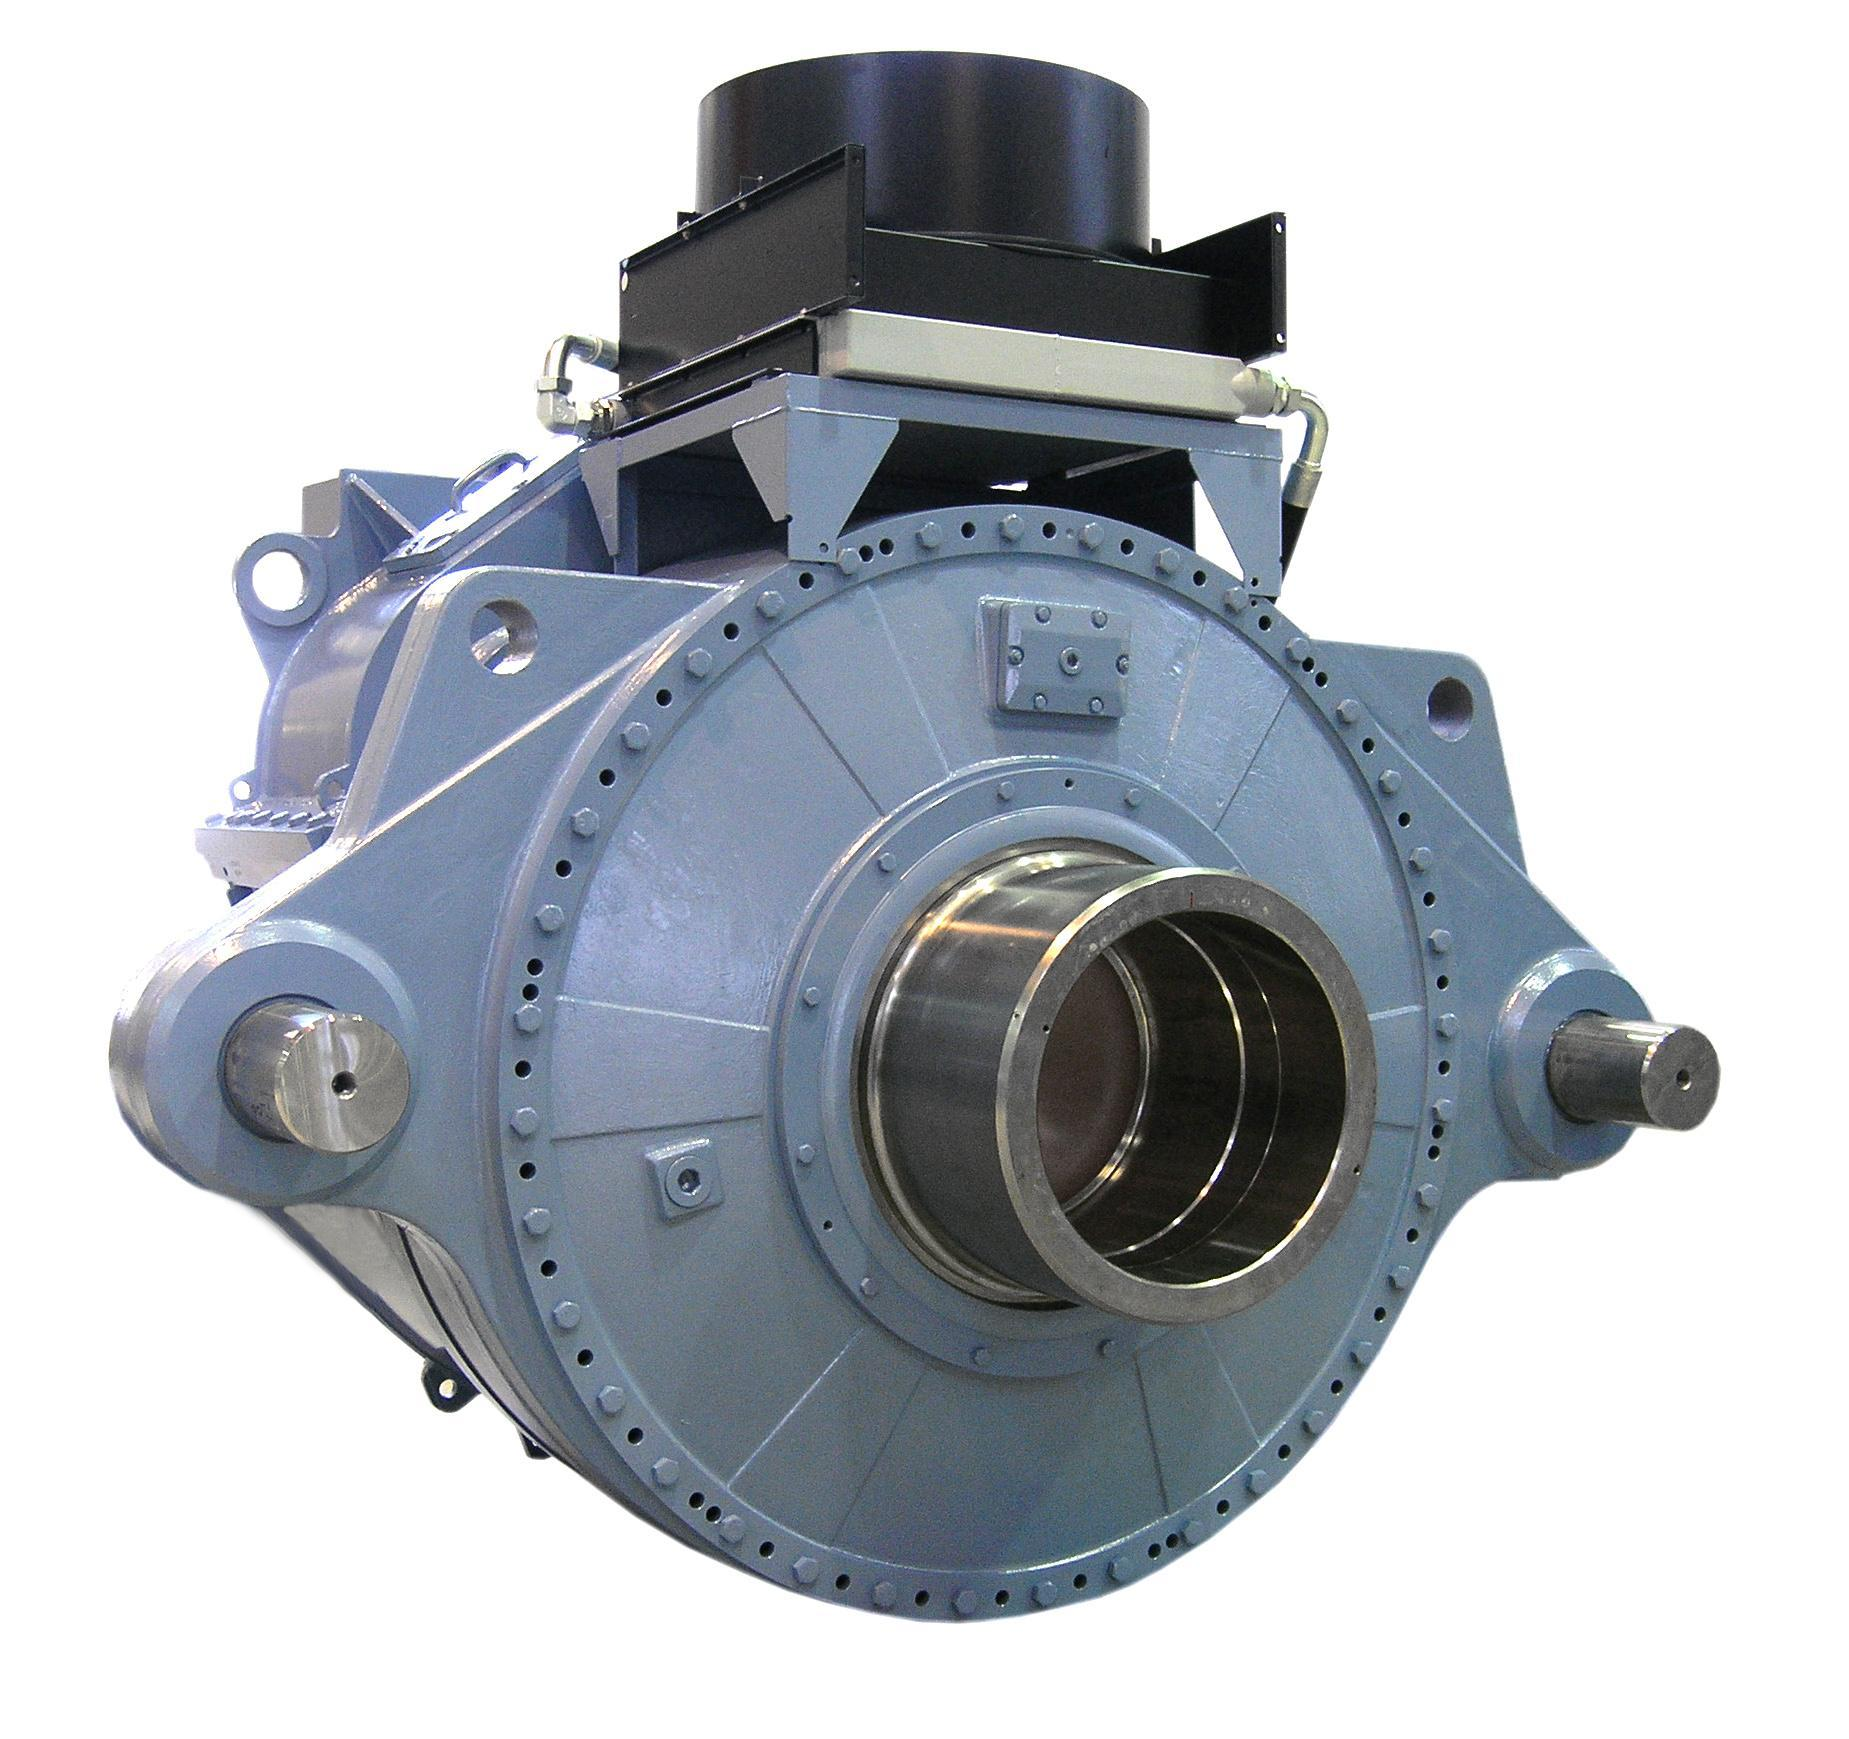 Gearbox for RePower turbine